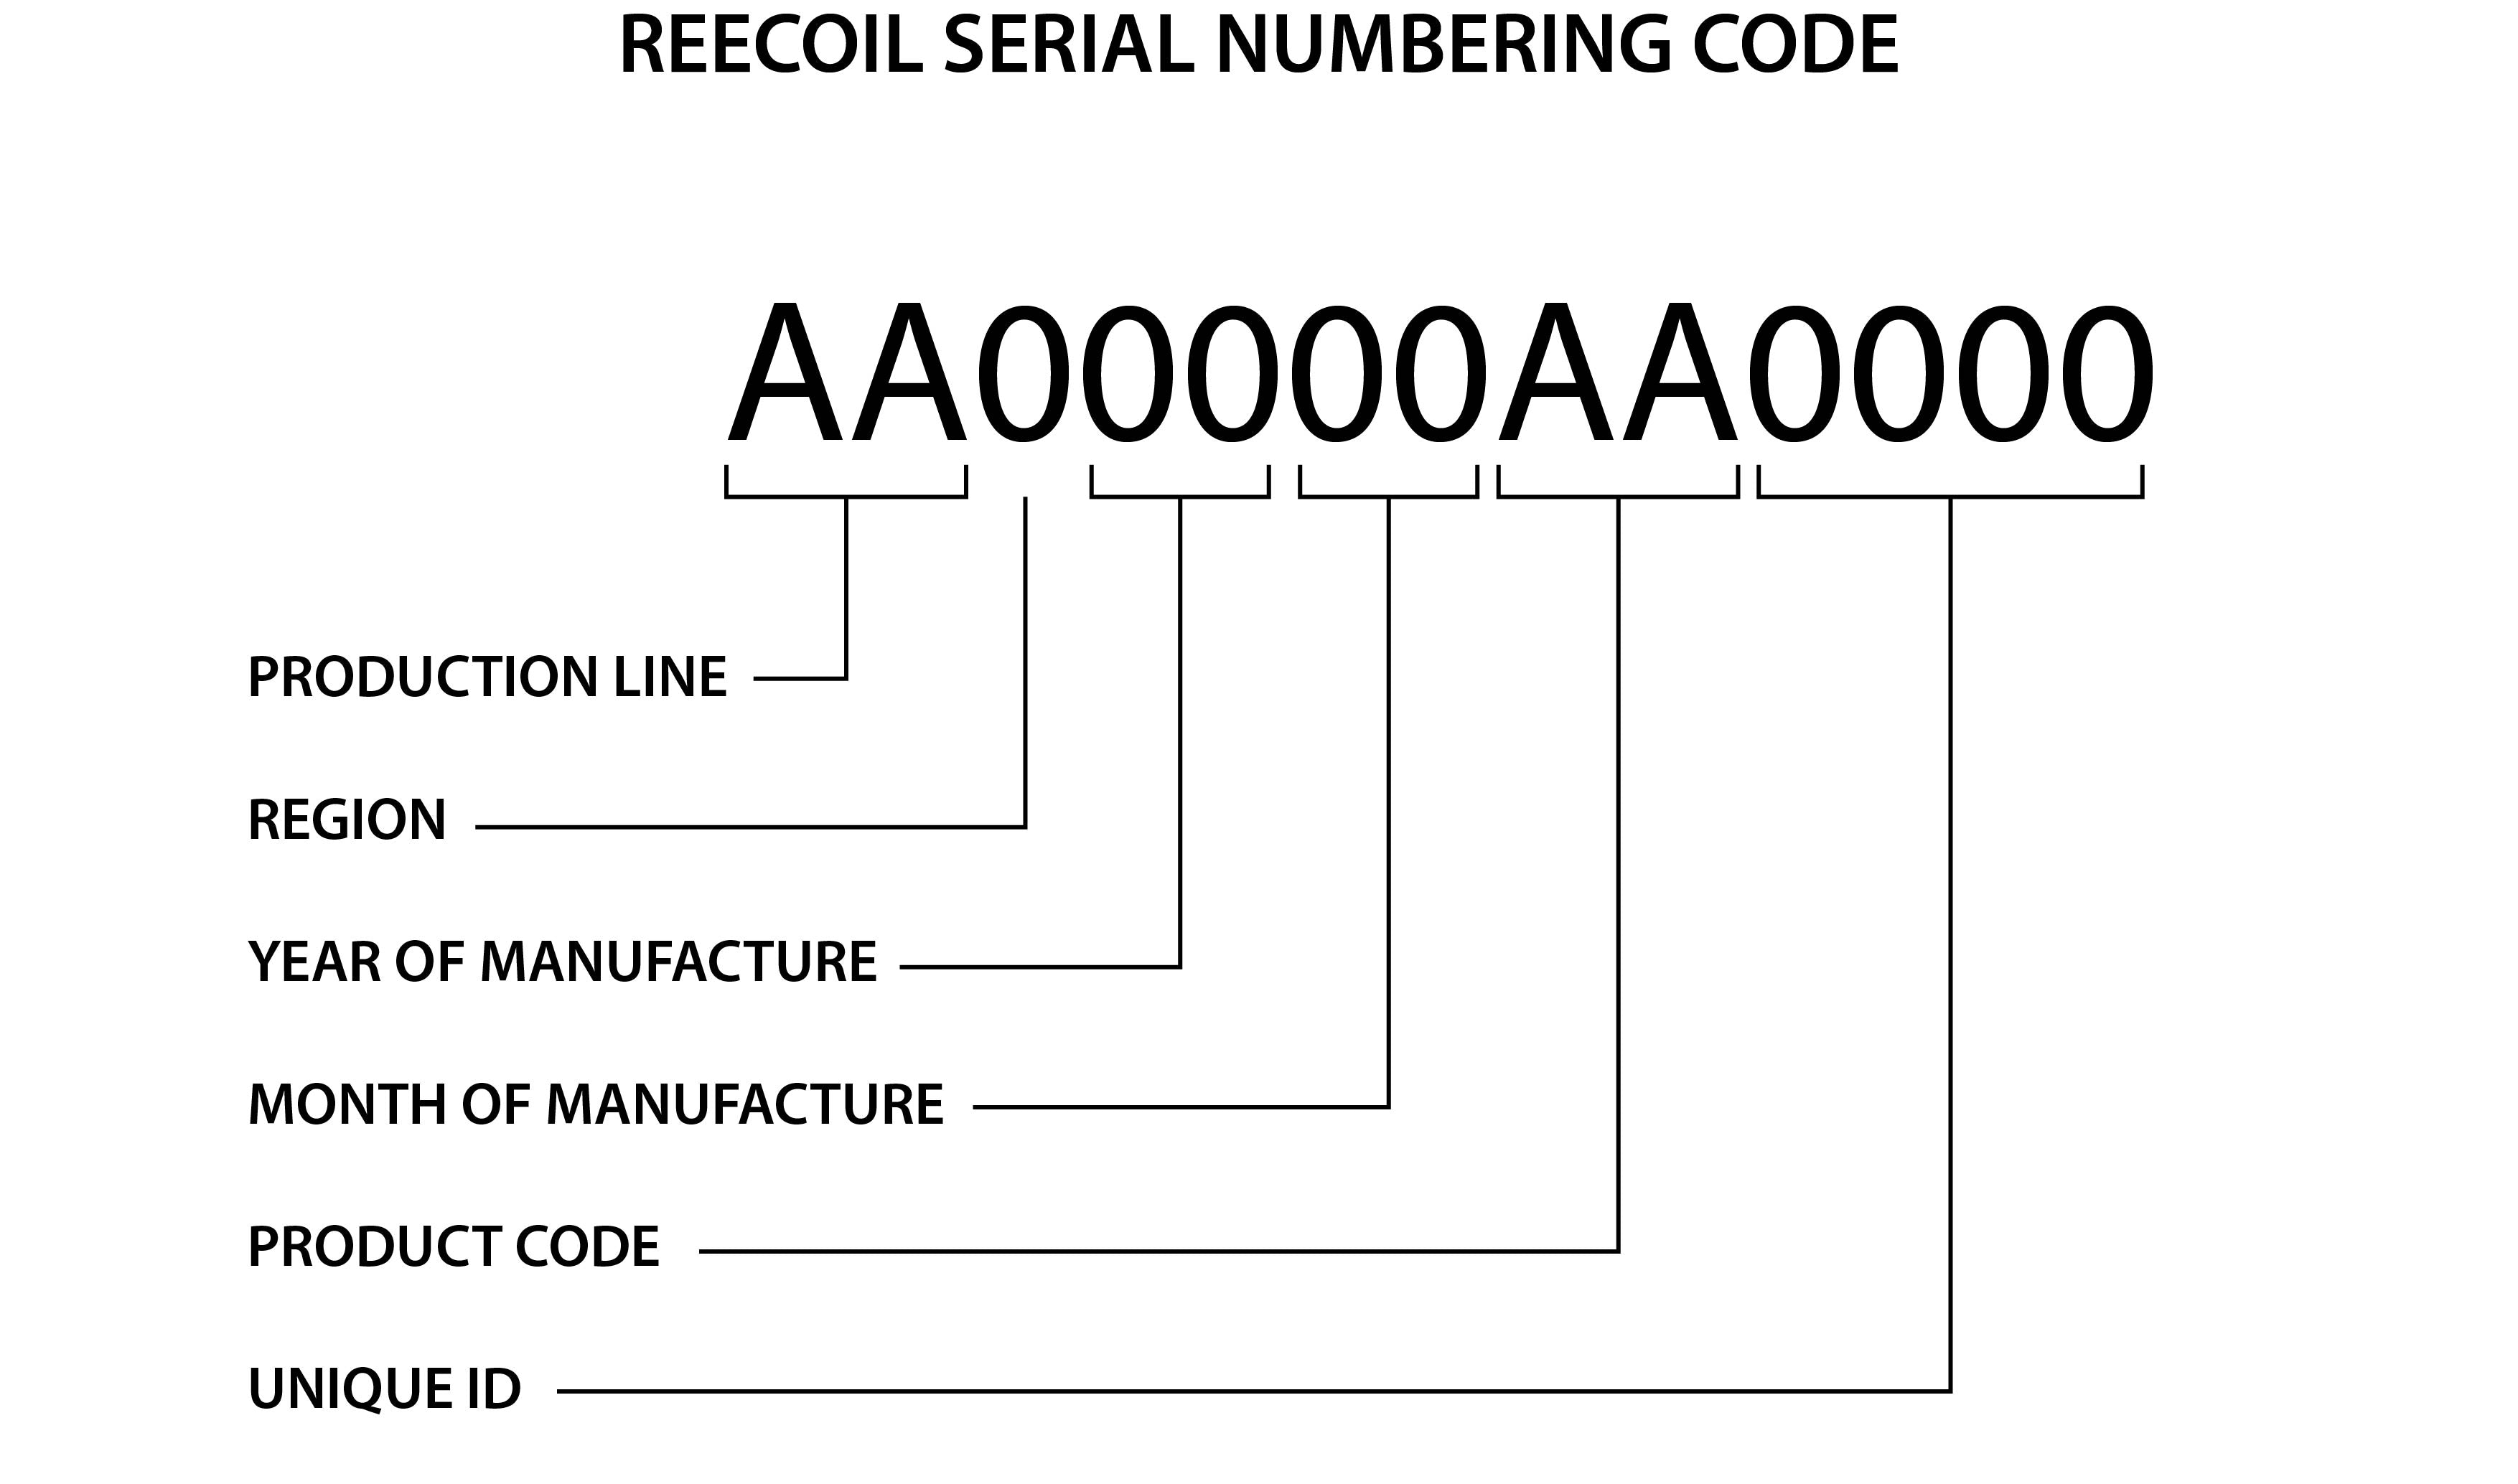 Reecoil unique serial numbering code